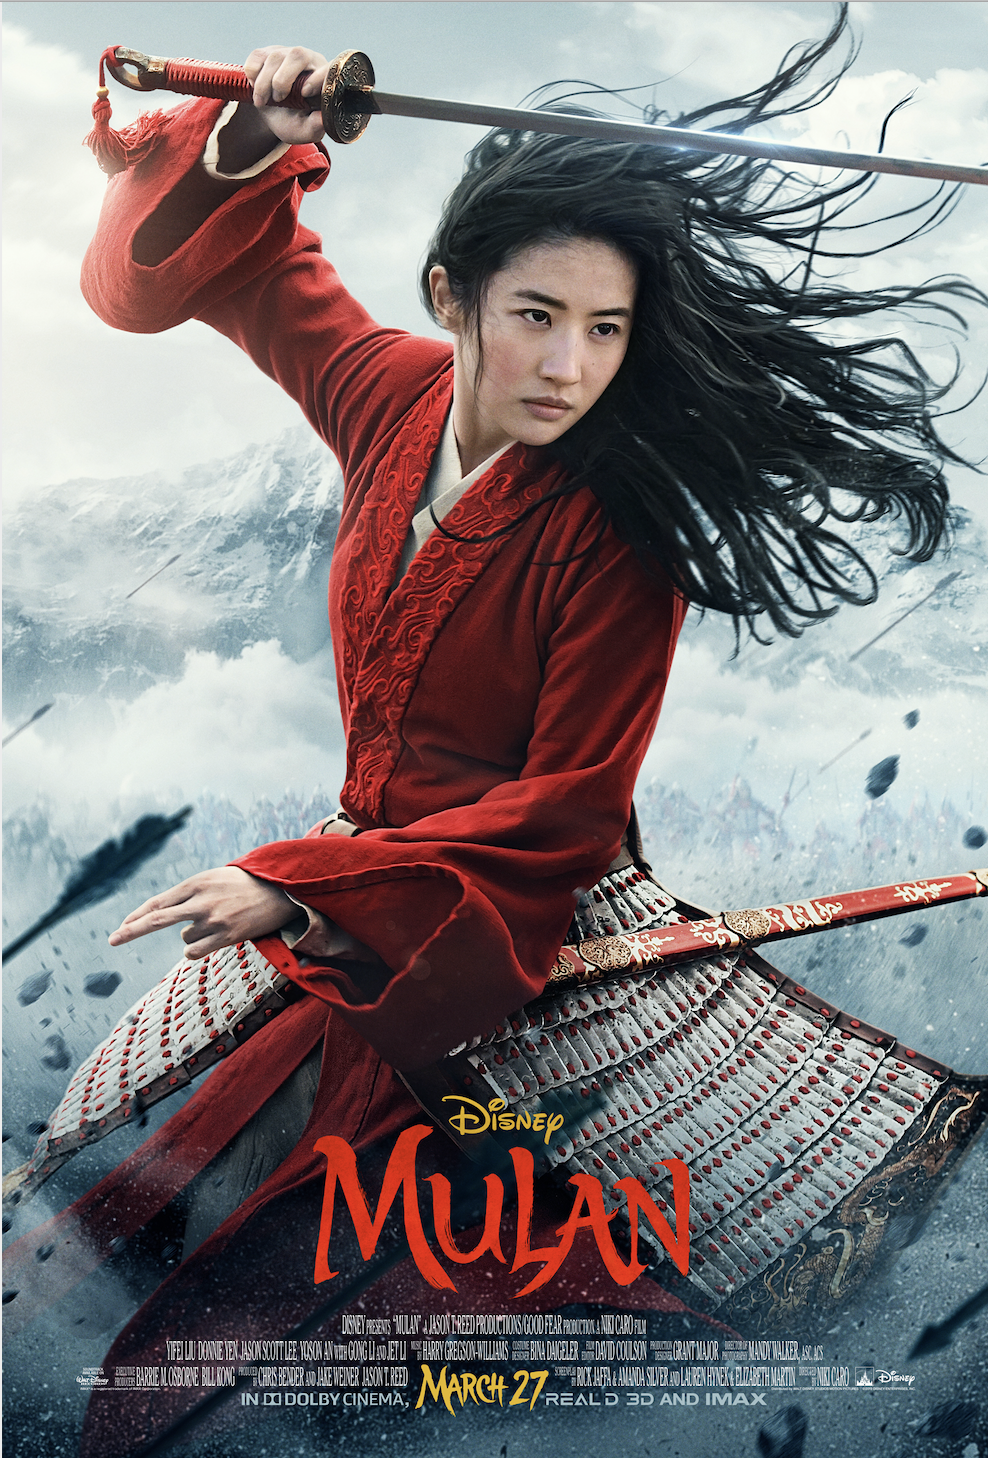 Disney's Mulan New Trailer & Poster